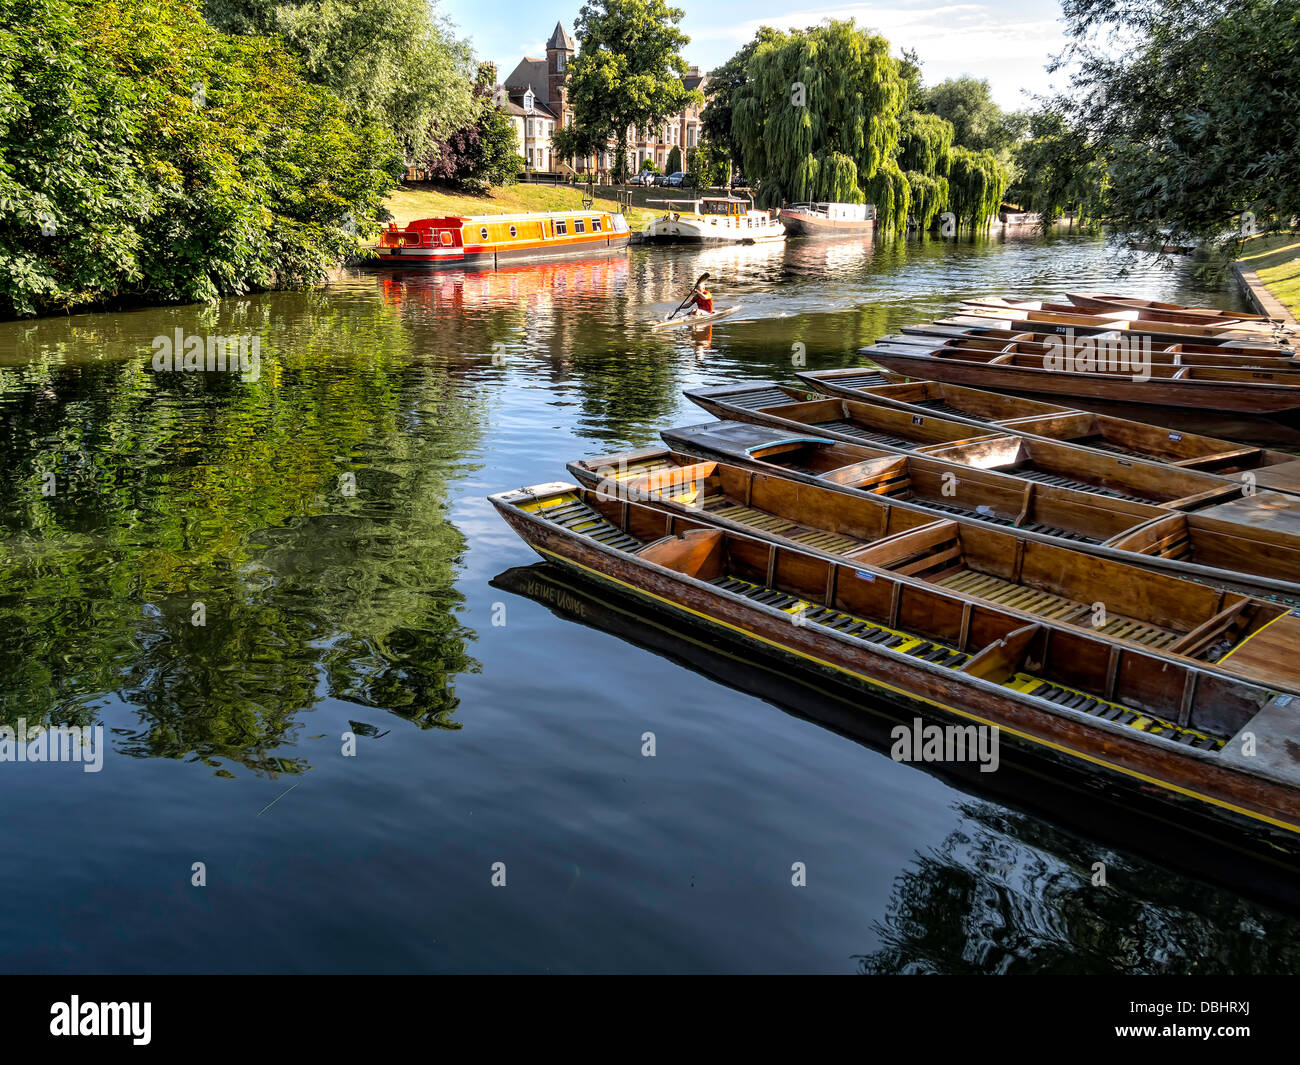 Punts lined up on river in Cambridge England - Stock Image